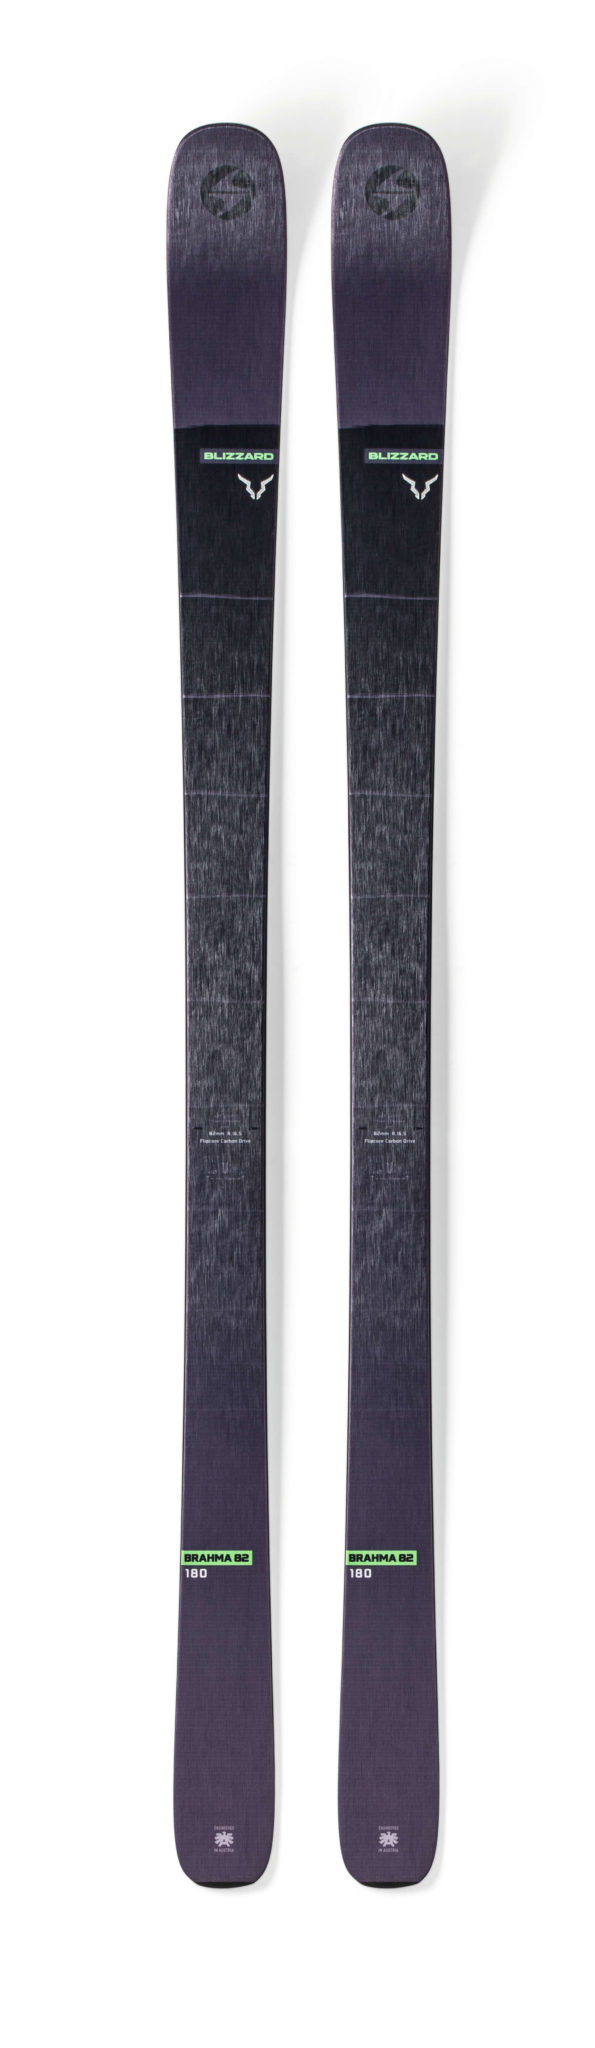 Blizzard Brahma 82 Skis (Flat) 2019-20 at Northern Ski Works